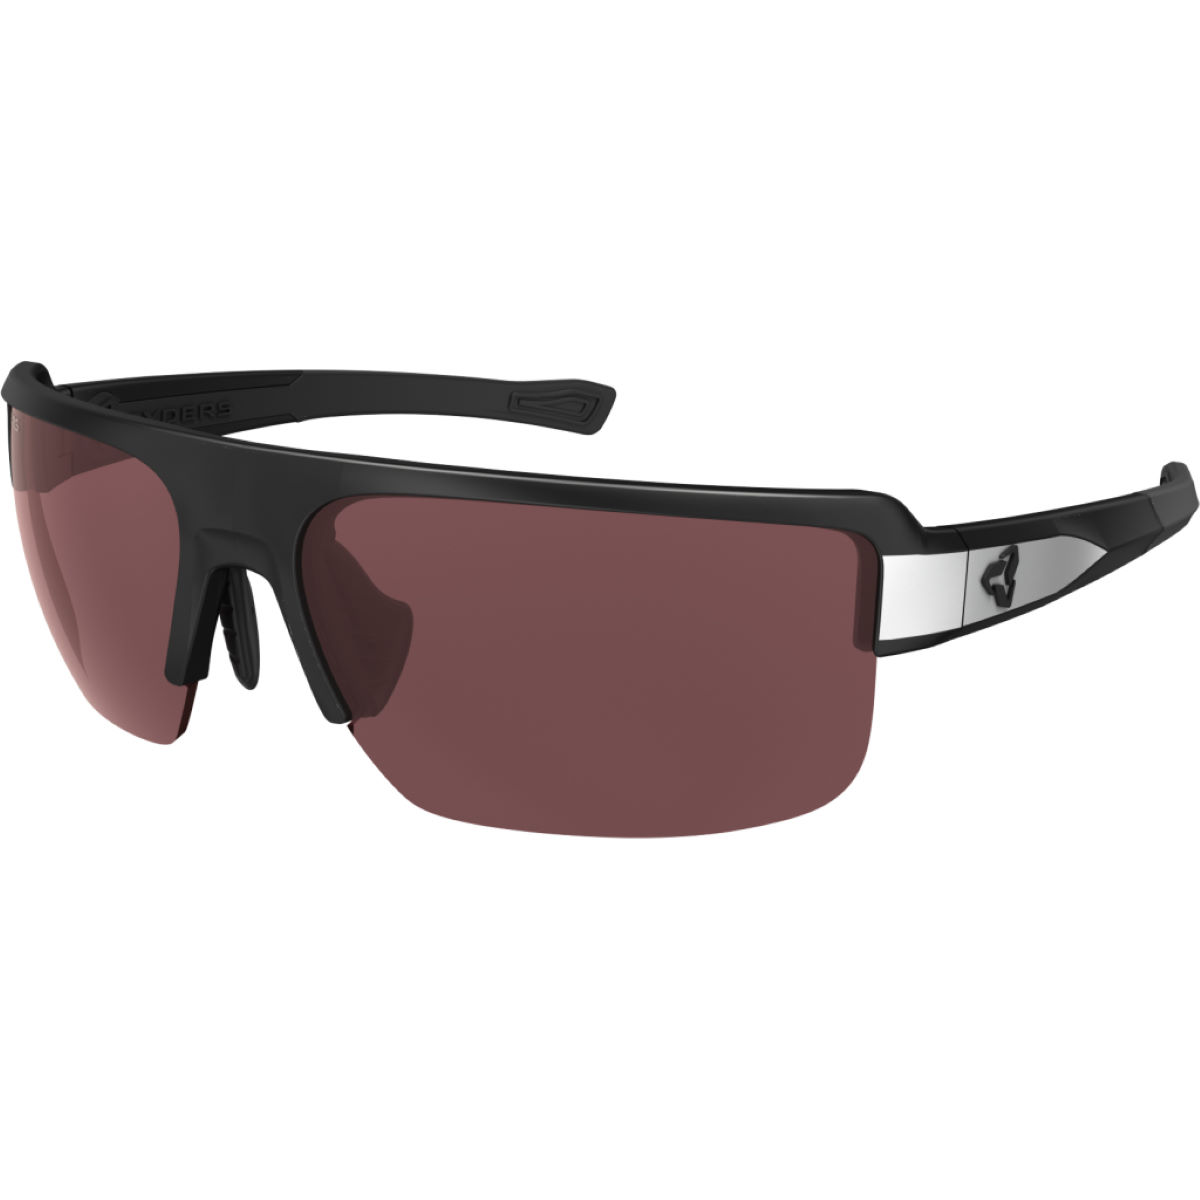 Ryders Eyewear Seventh Velo-Polar Anti-Fog  Sunglasses - Gafas de sol